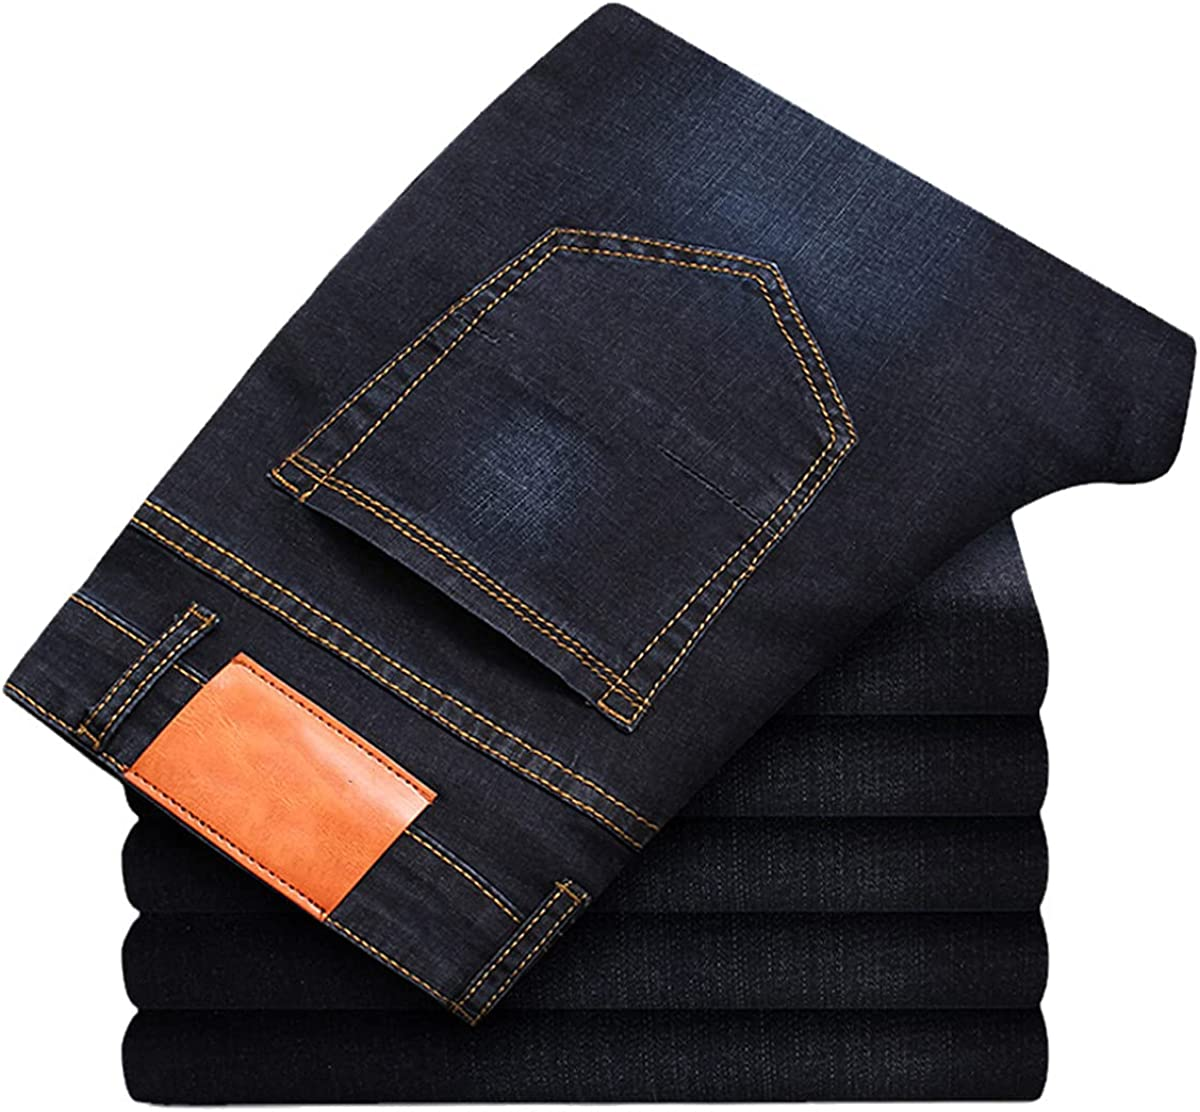 Spring and Autumn Classic Men's Plus Size Jeans Fashion Business Casual Stretch Slim Black and Blue Men's Pants